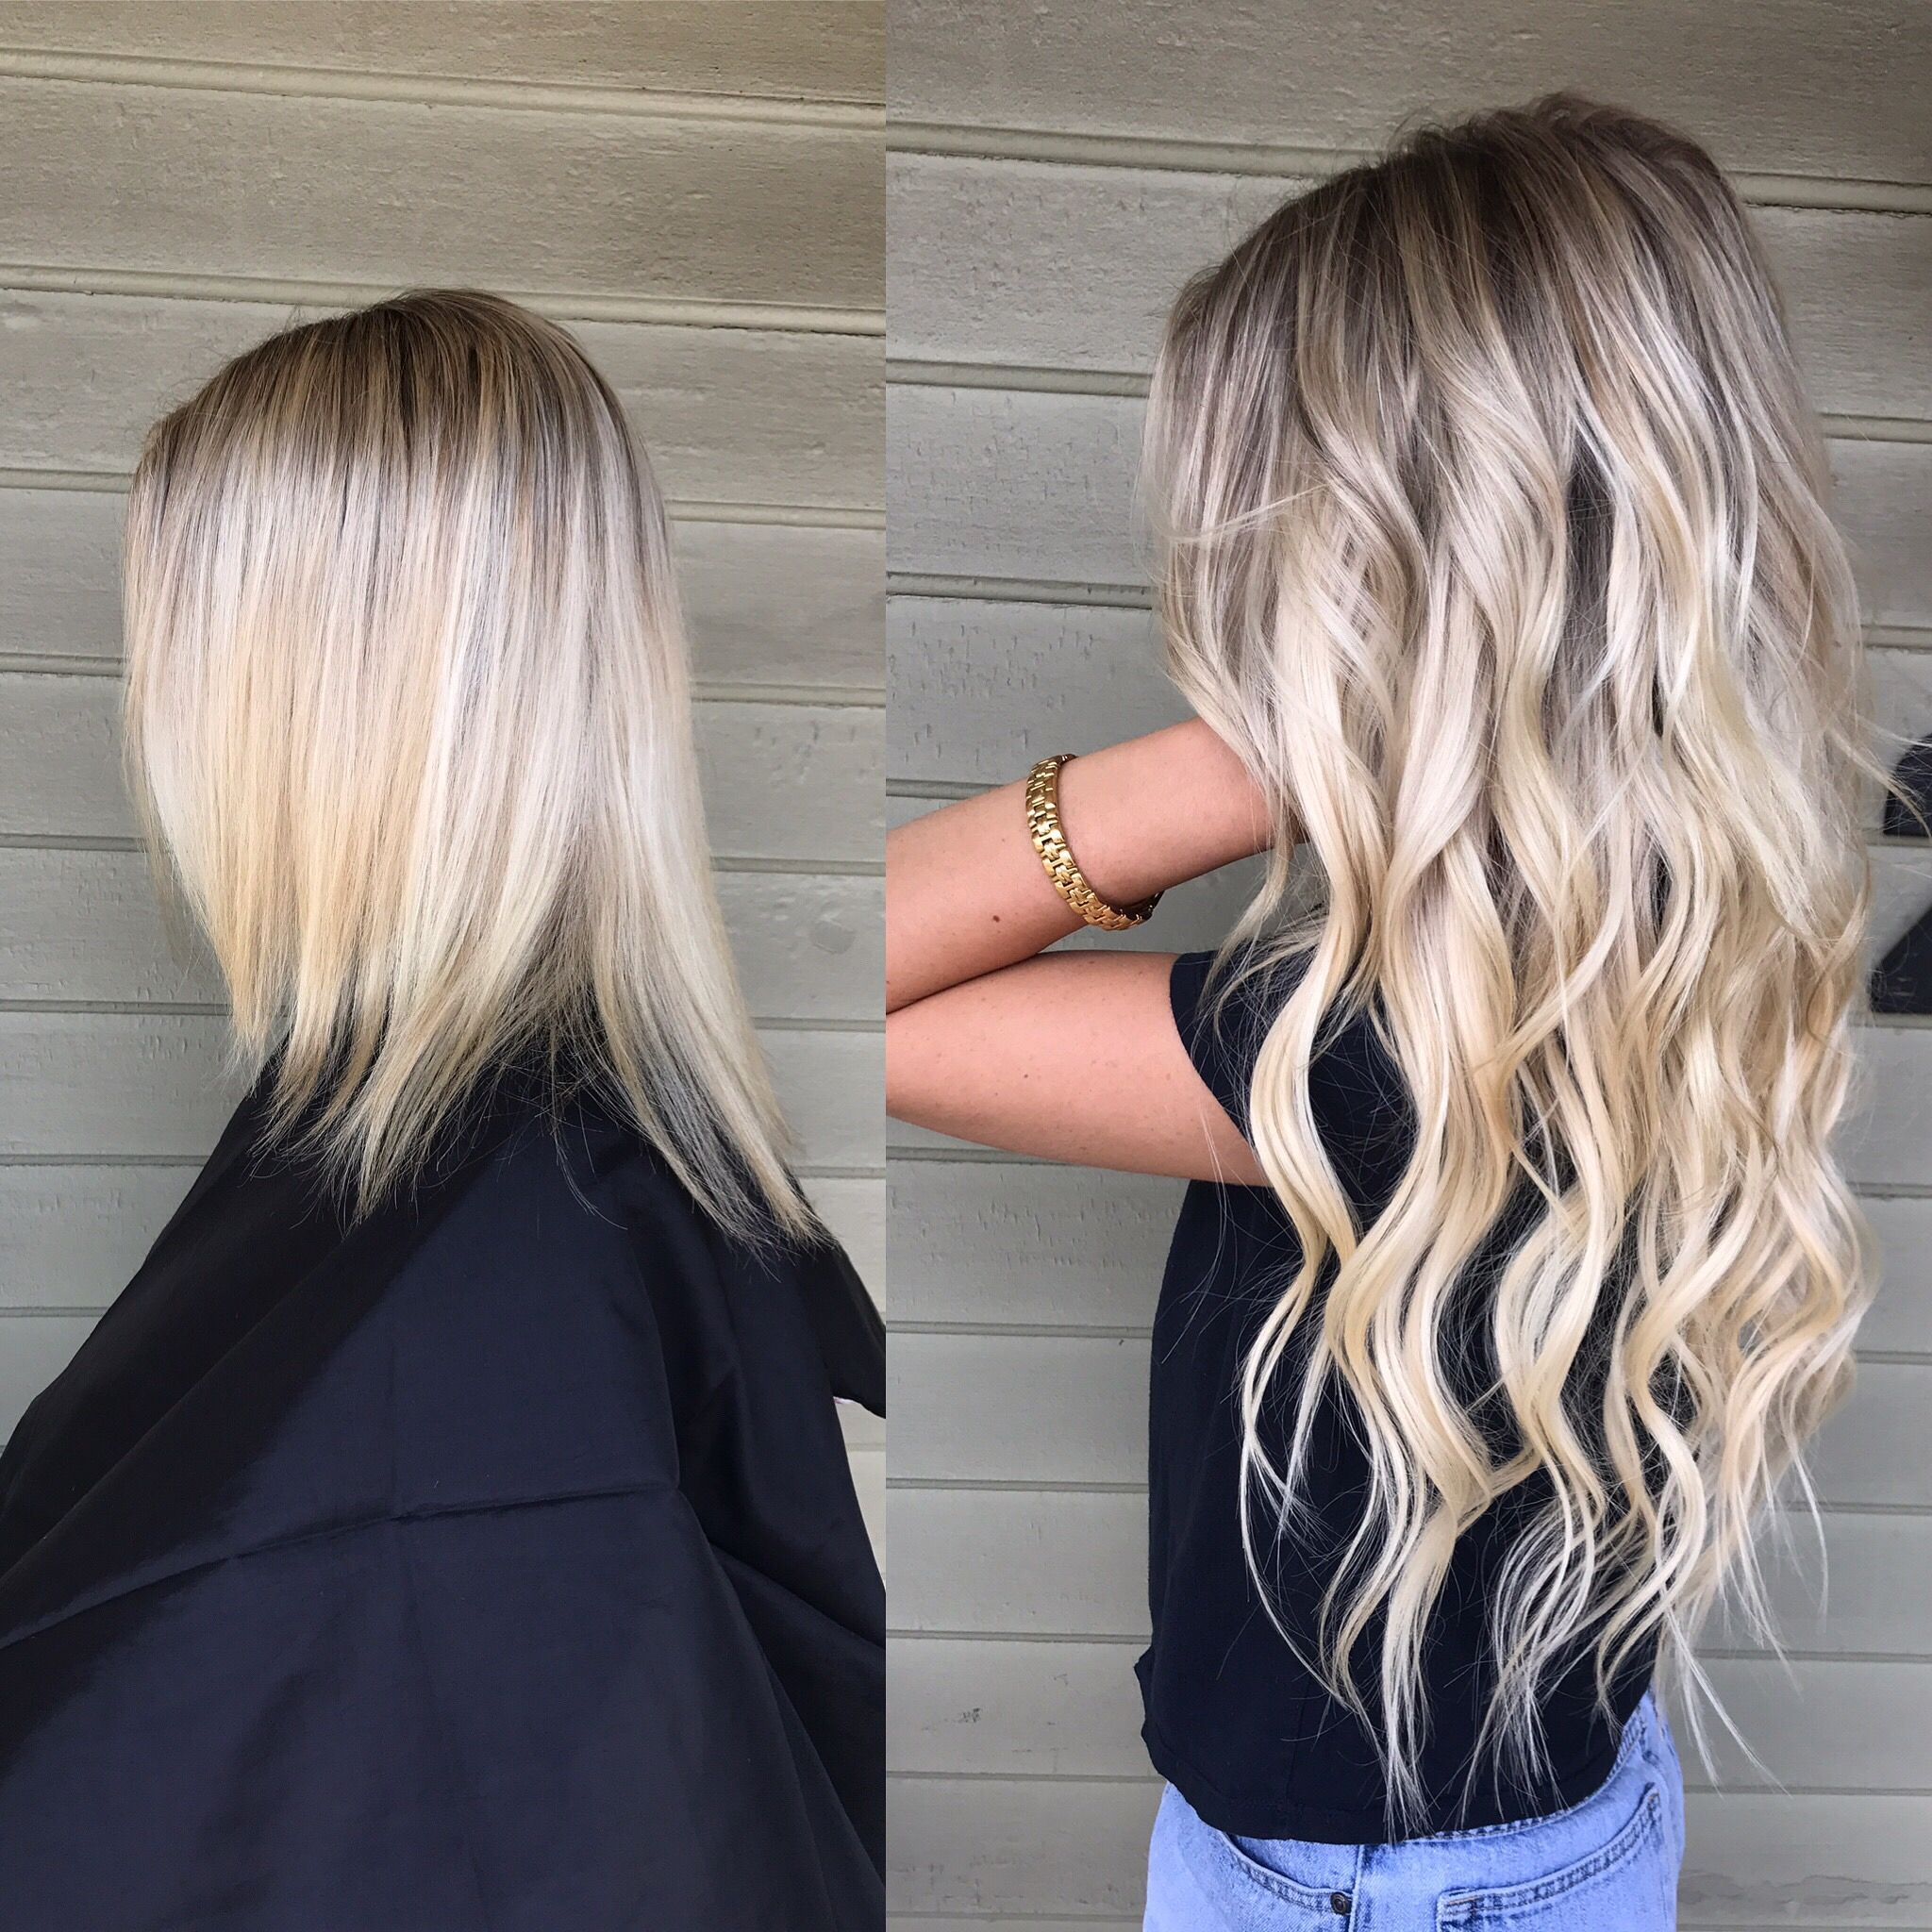 Blonde Dreamcatchers Hair Extensions Hair Extensions For Short